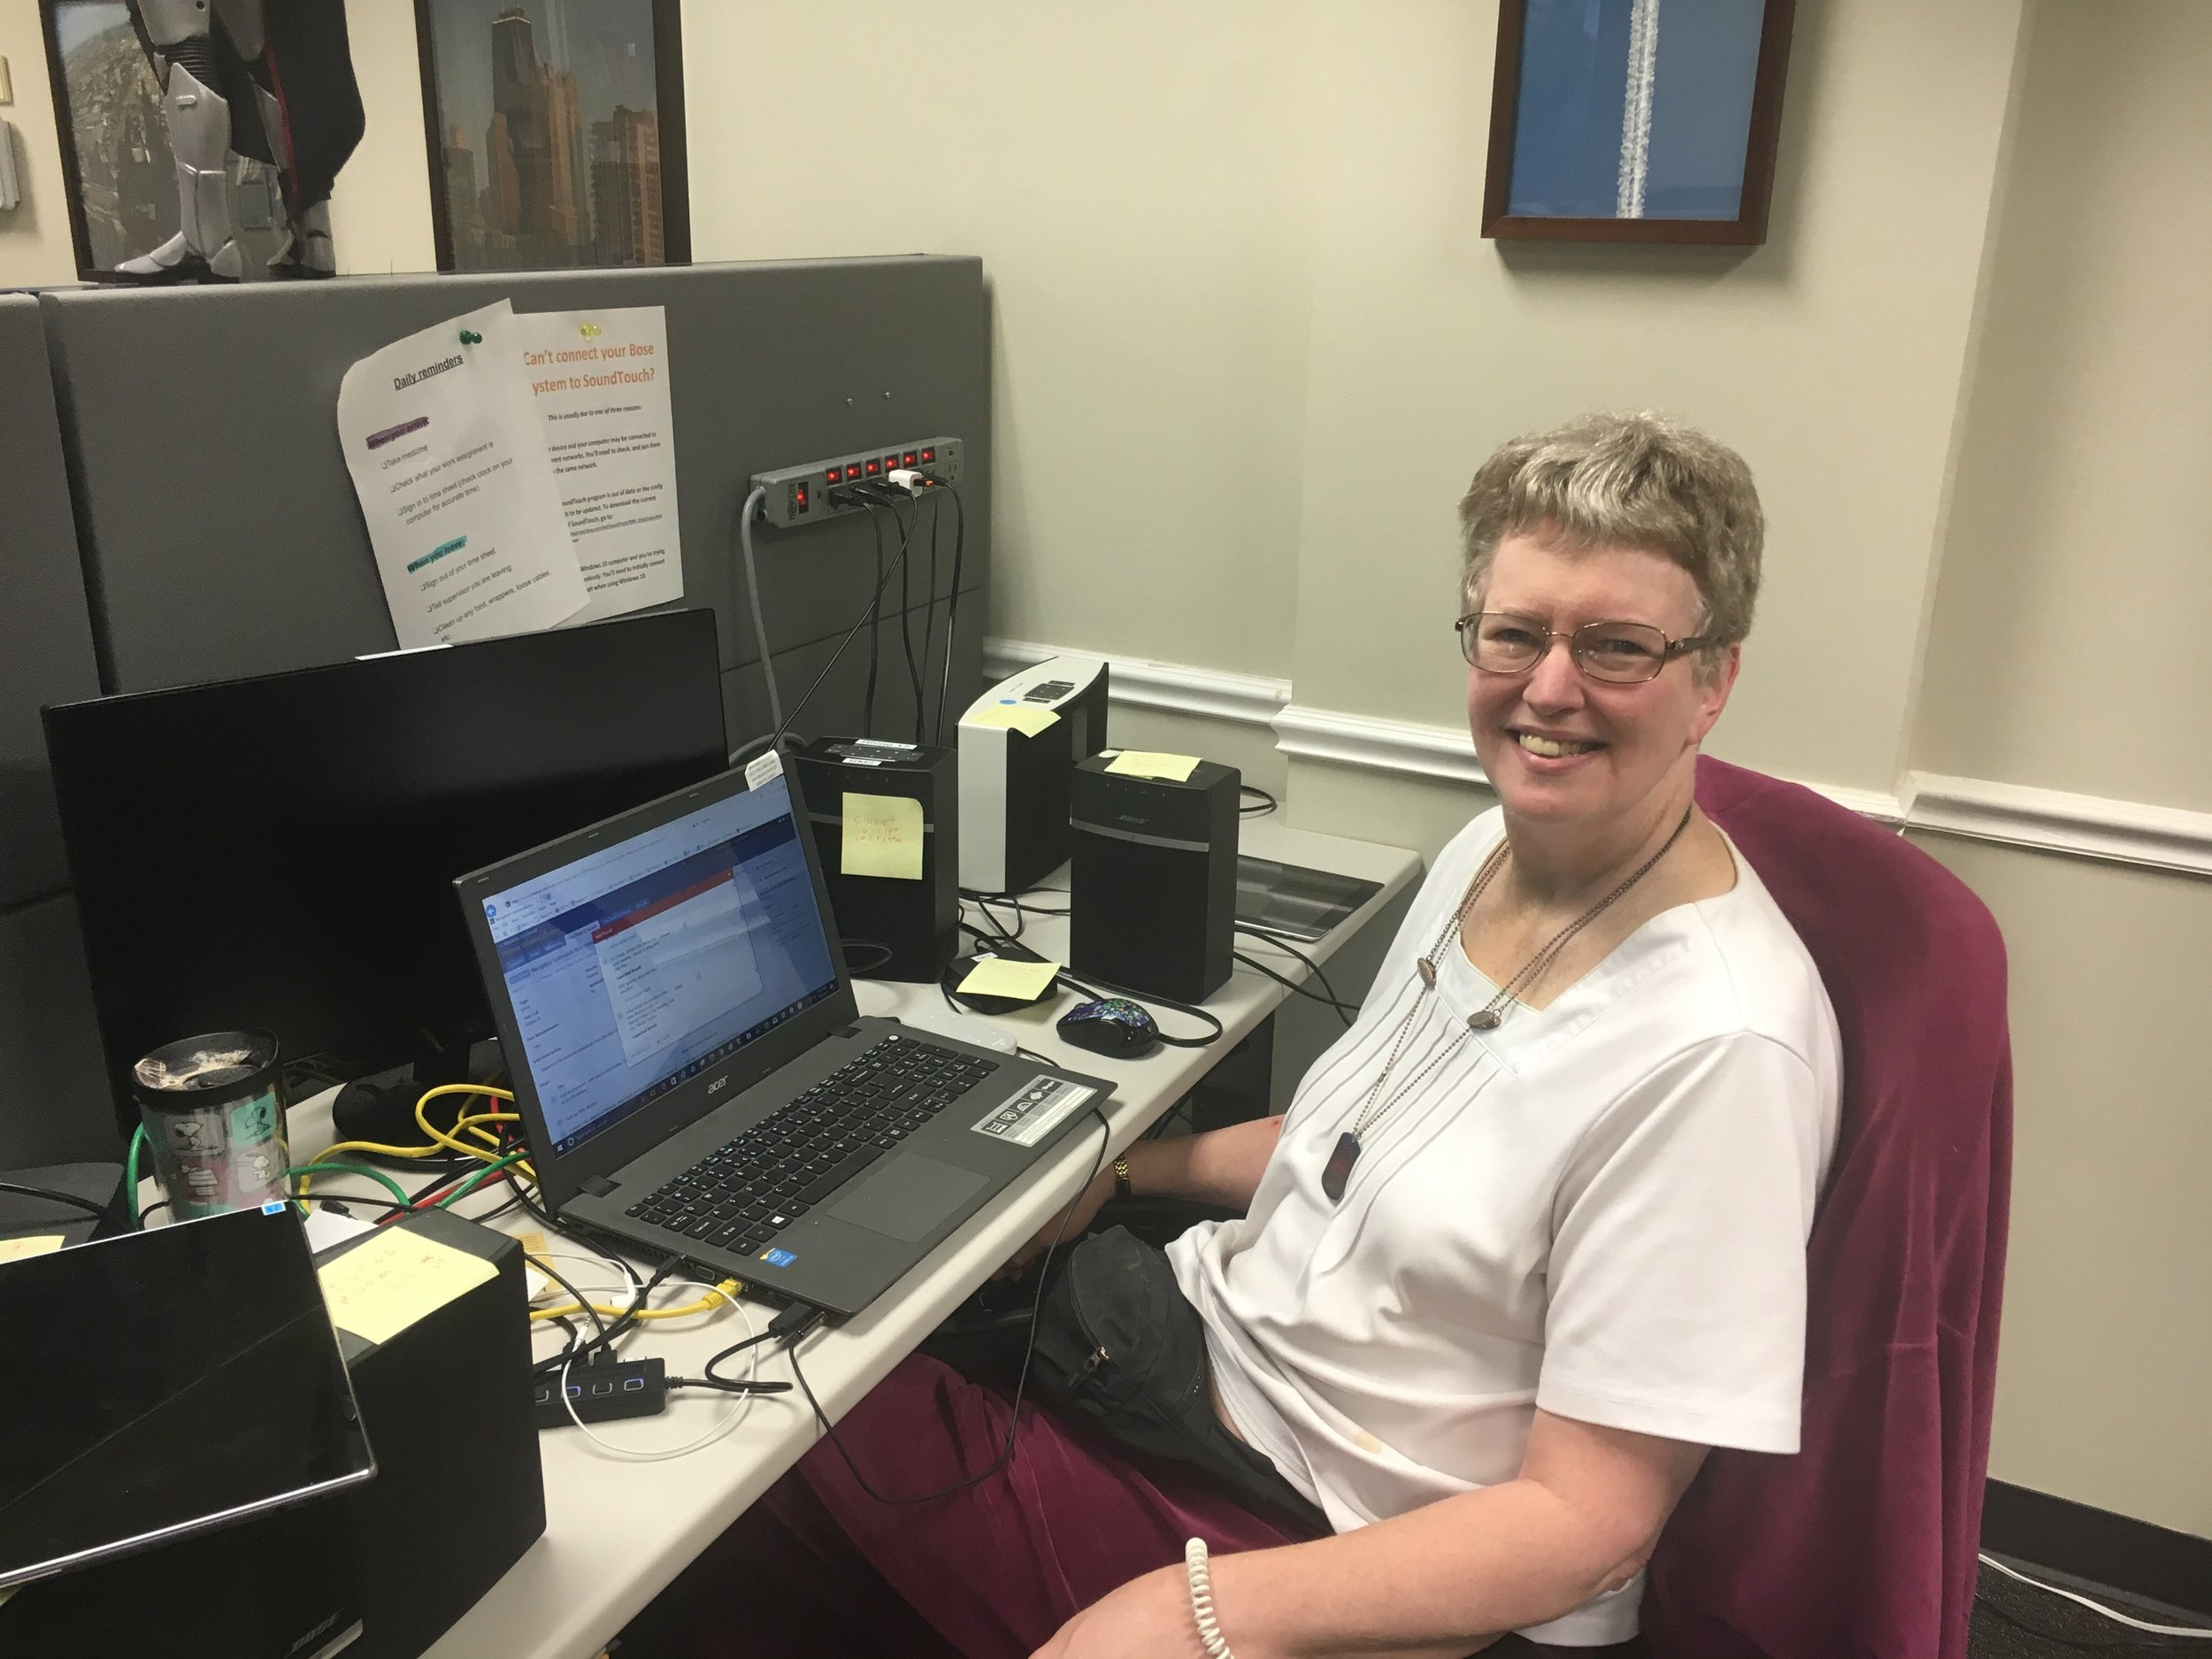 """The testing techniques and defect reporting techniques are superior to what I have come across during my career in the computer science field.""  -Gail, 61 years old, QA Analyst since 2014"